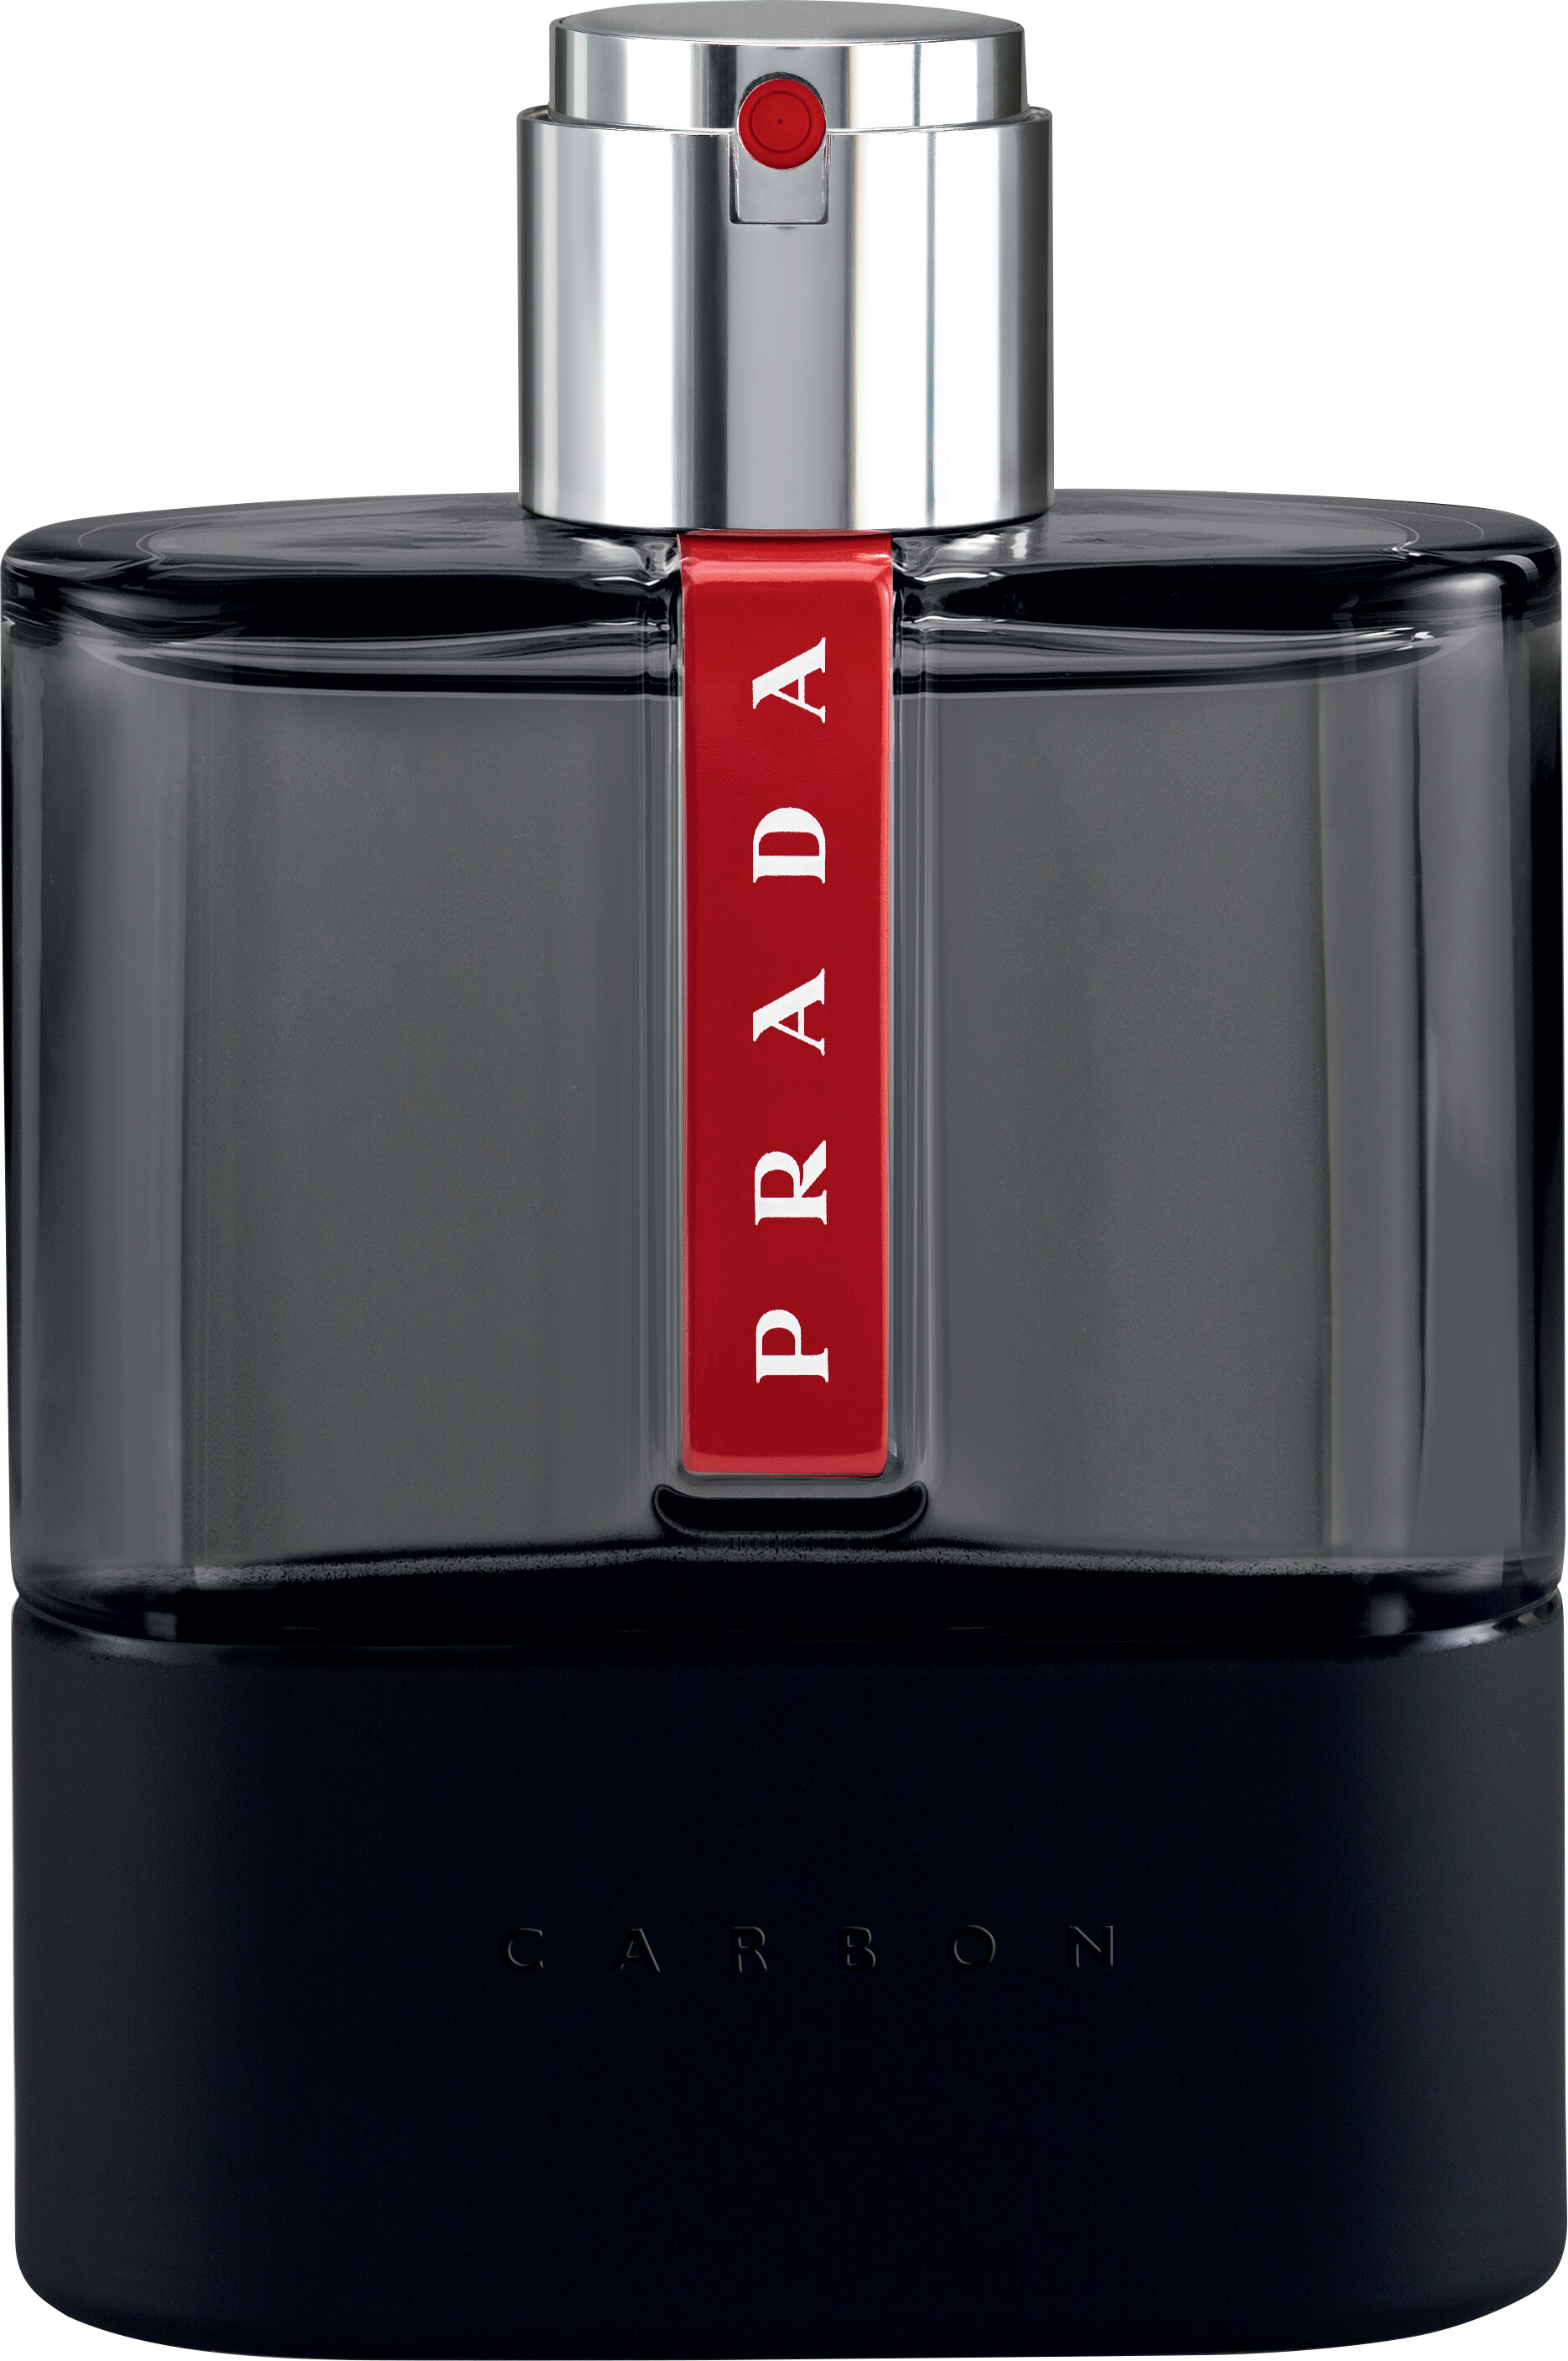 Men39s Perfume Luna Rossa Carbon Prada EDT shopnationeu f8c068c173